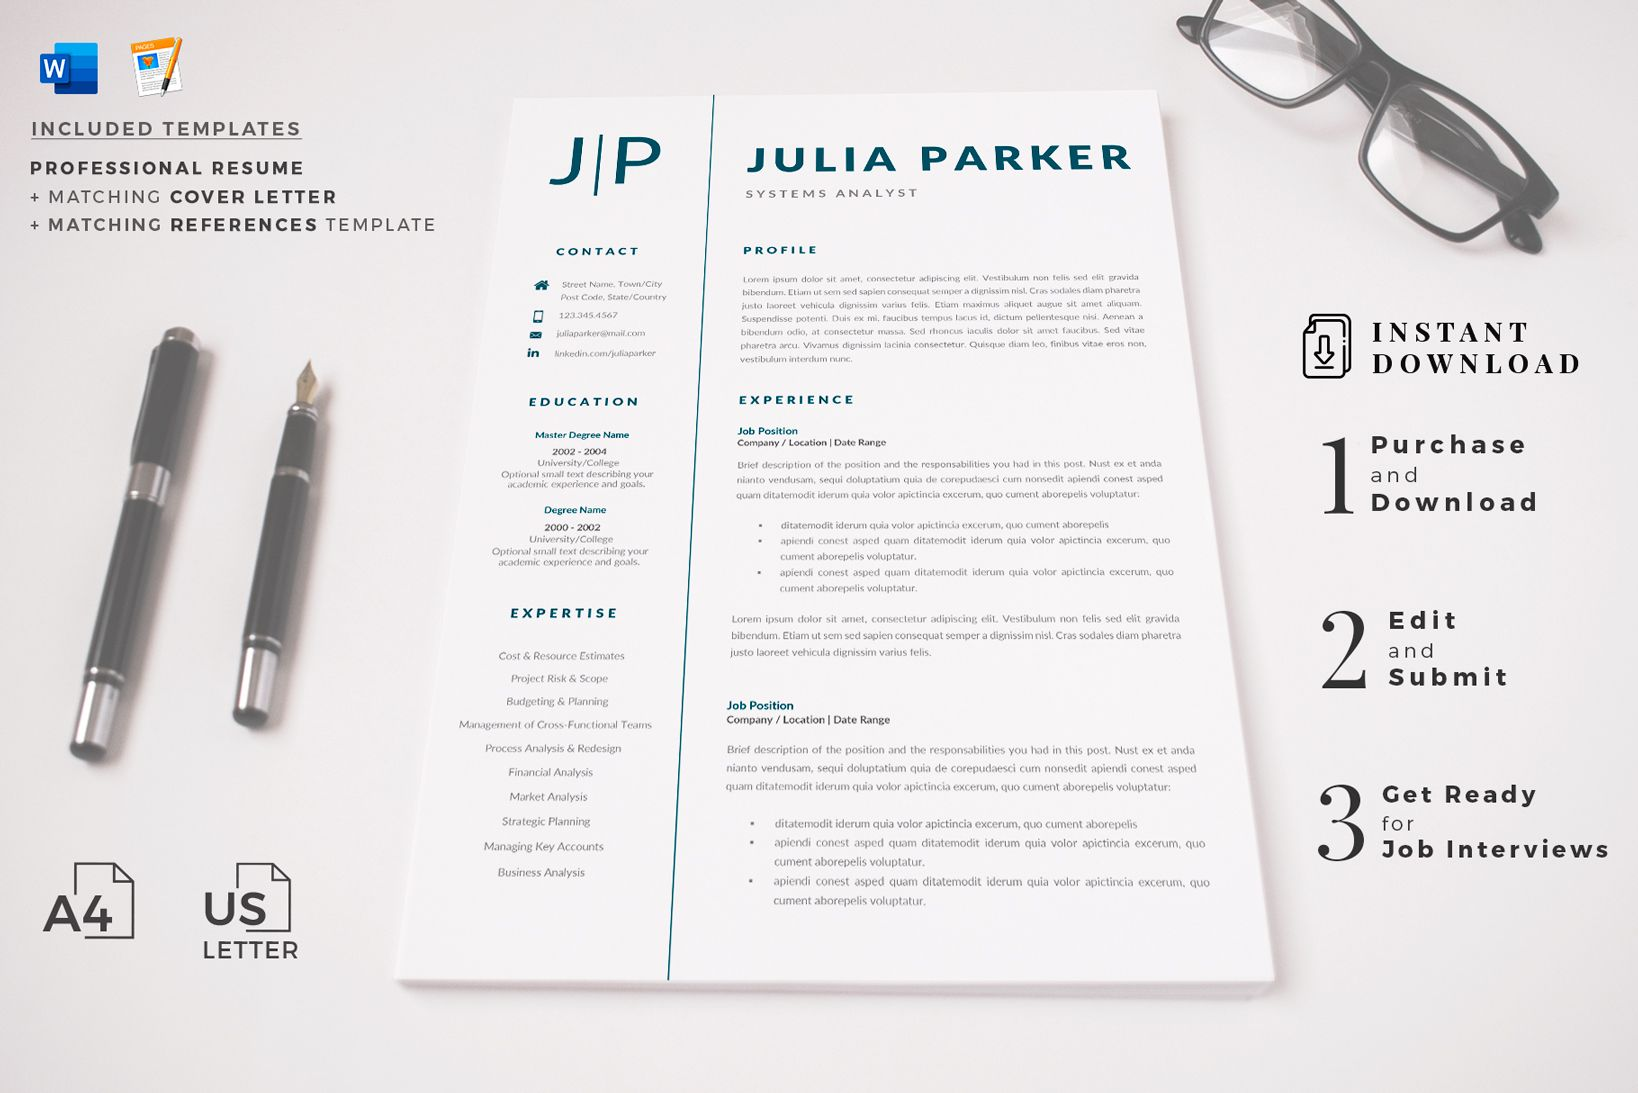 Creative Resume Templates For Ms Word And Mac Pages Professional Resume Templat Creative Resume Templates Cover Letter For Resume Resume Template Professional Internship resume template microsoft word